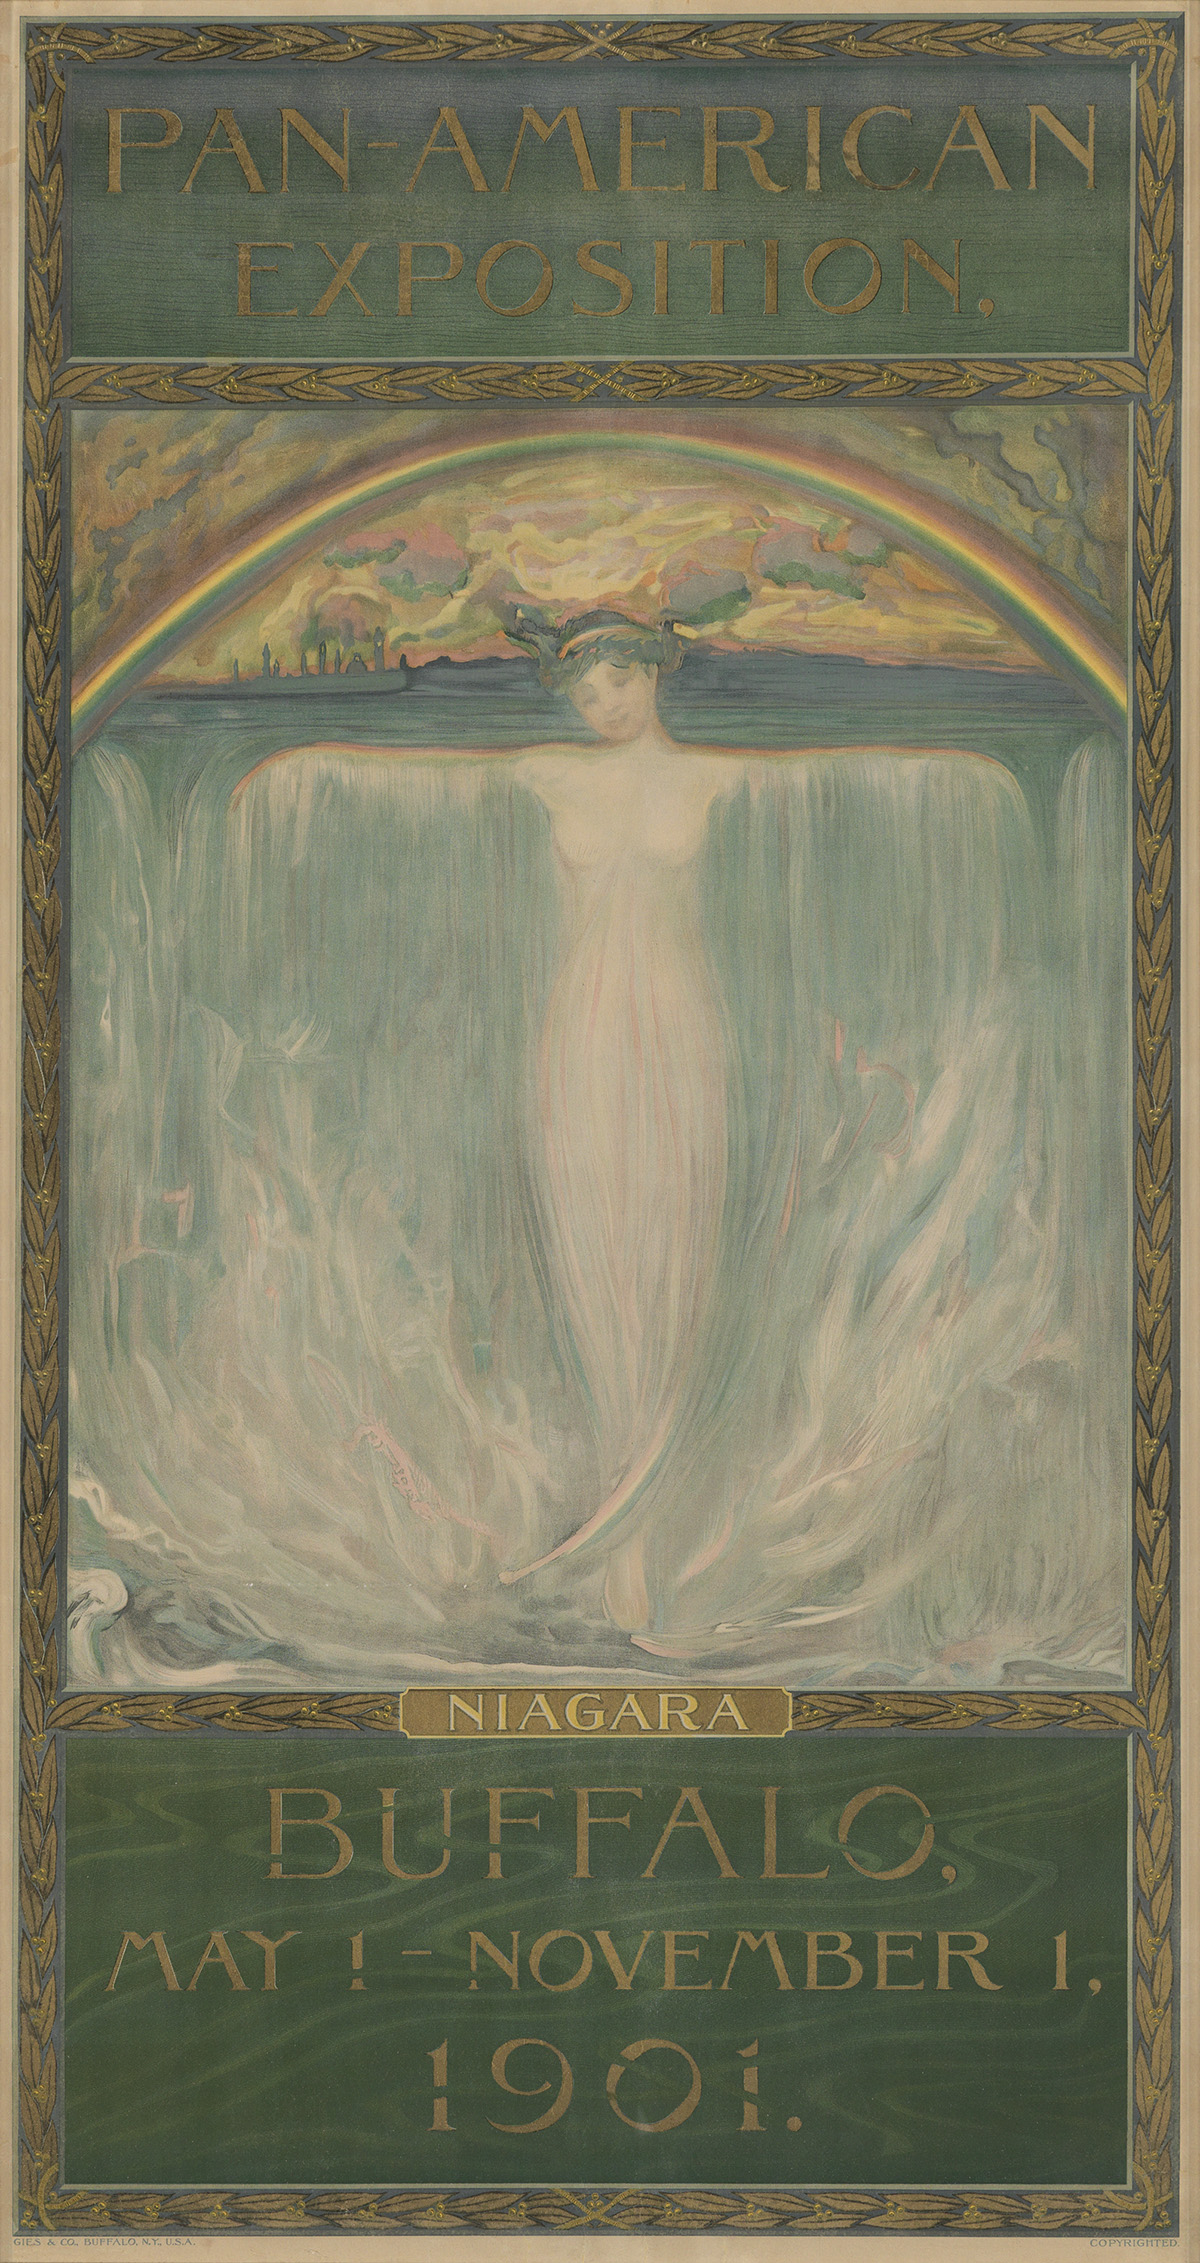 EVELYN RUMSEY CARY (1855-1924). PAN - AMERICAN EXPOSITION / NIAGARA. 1901. 48x25 inches, 122x67 cm. Gies & Co., Buffalo.